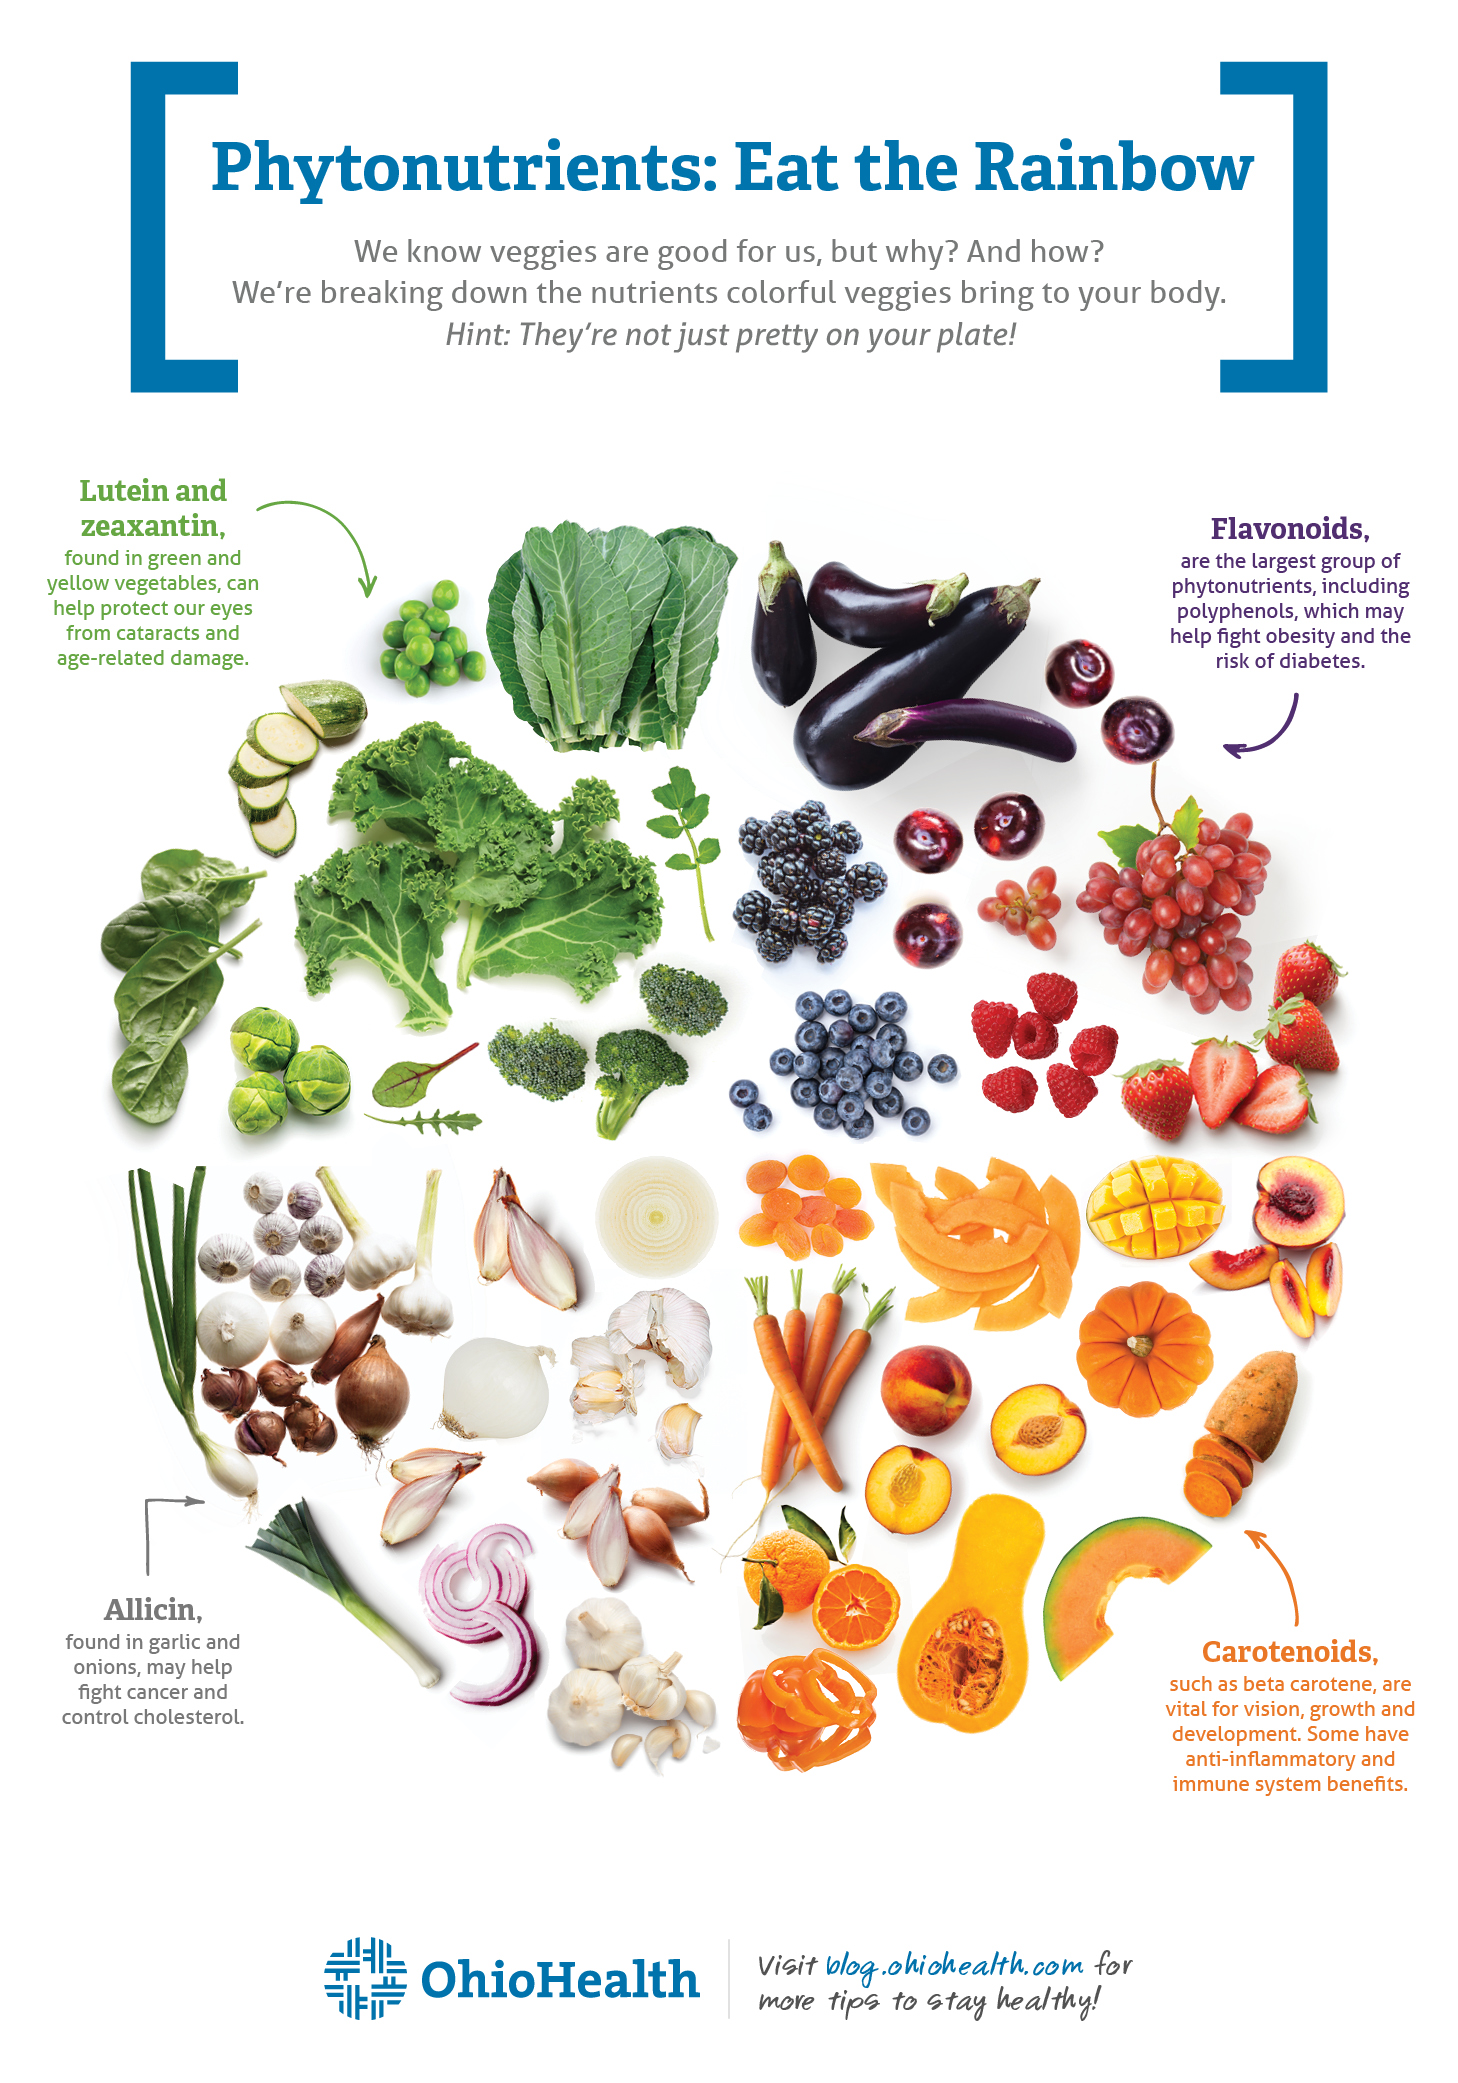 Infographic depicting a variety of fruits and vegetables and the phytonutrients they contain